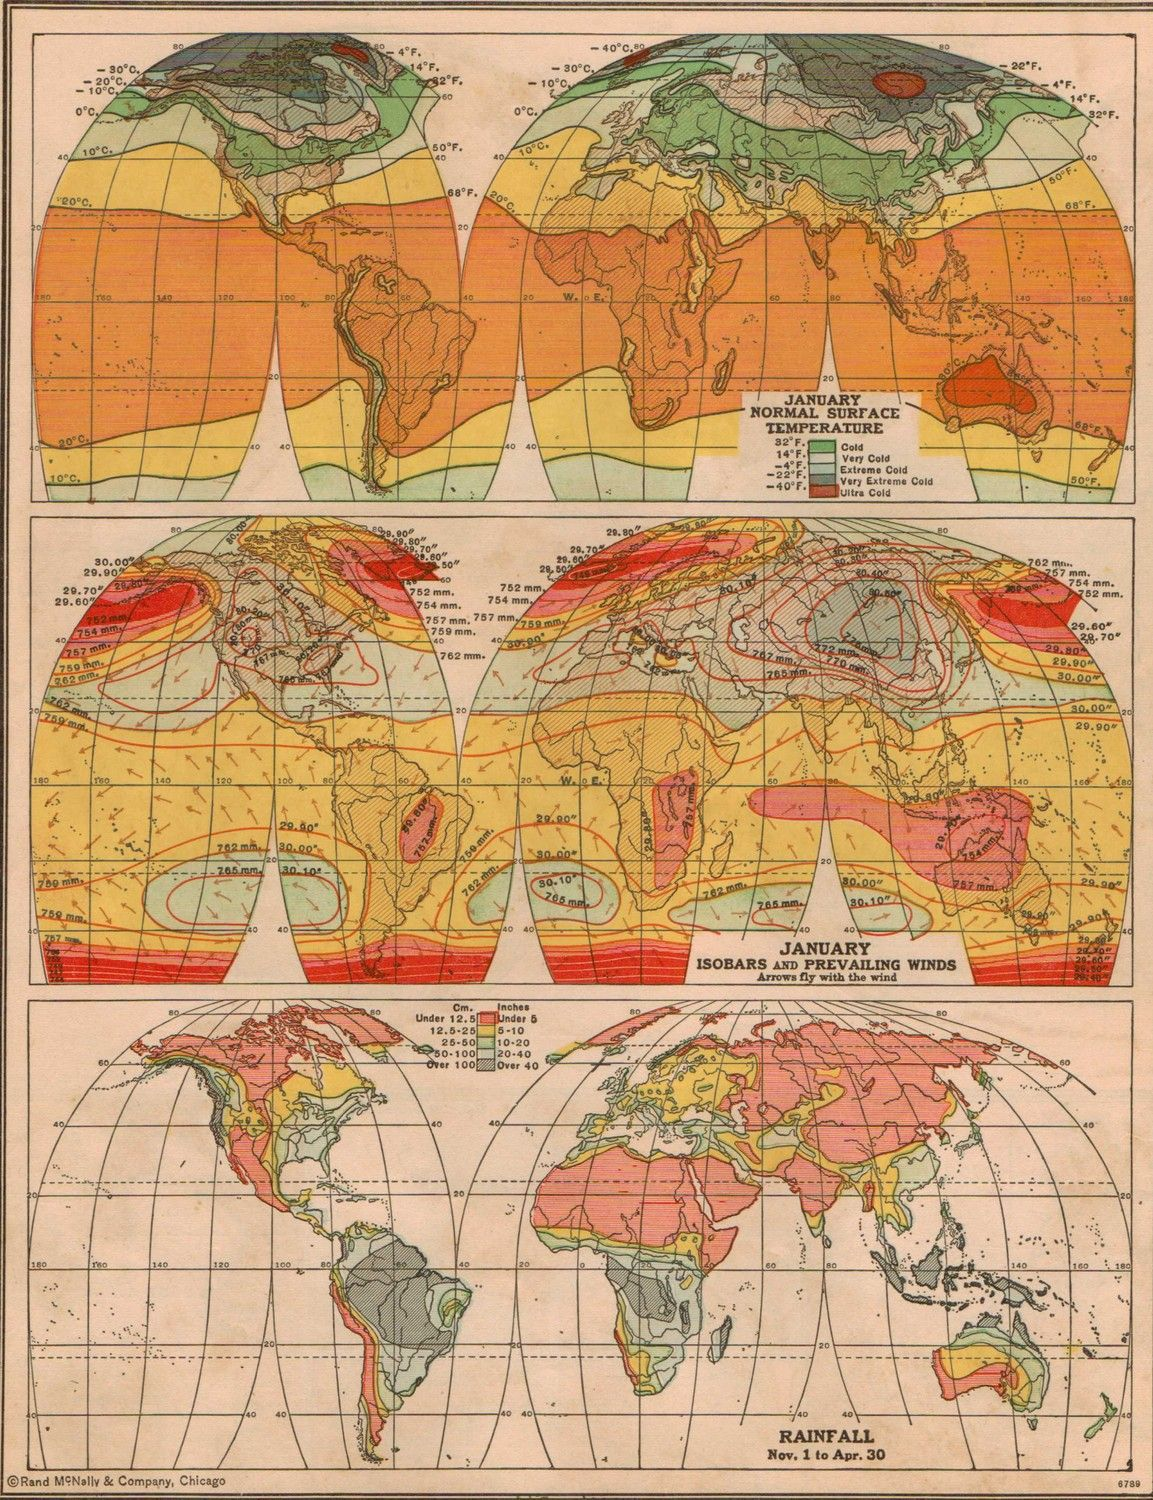 Vintage 1940s World Climate Map Via Etsy   With Images